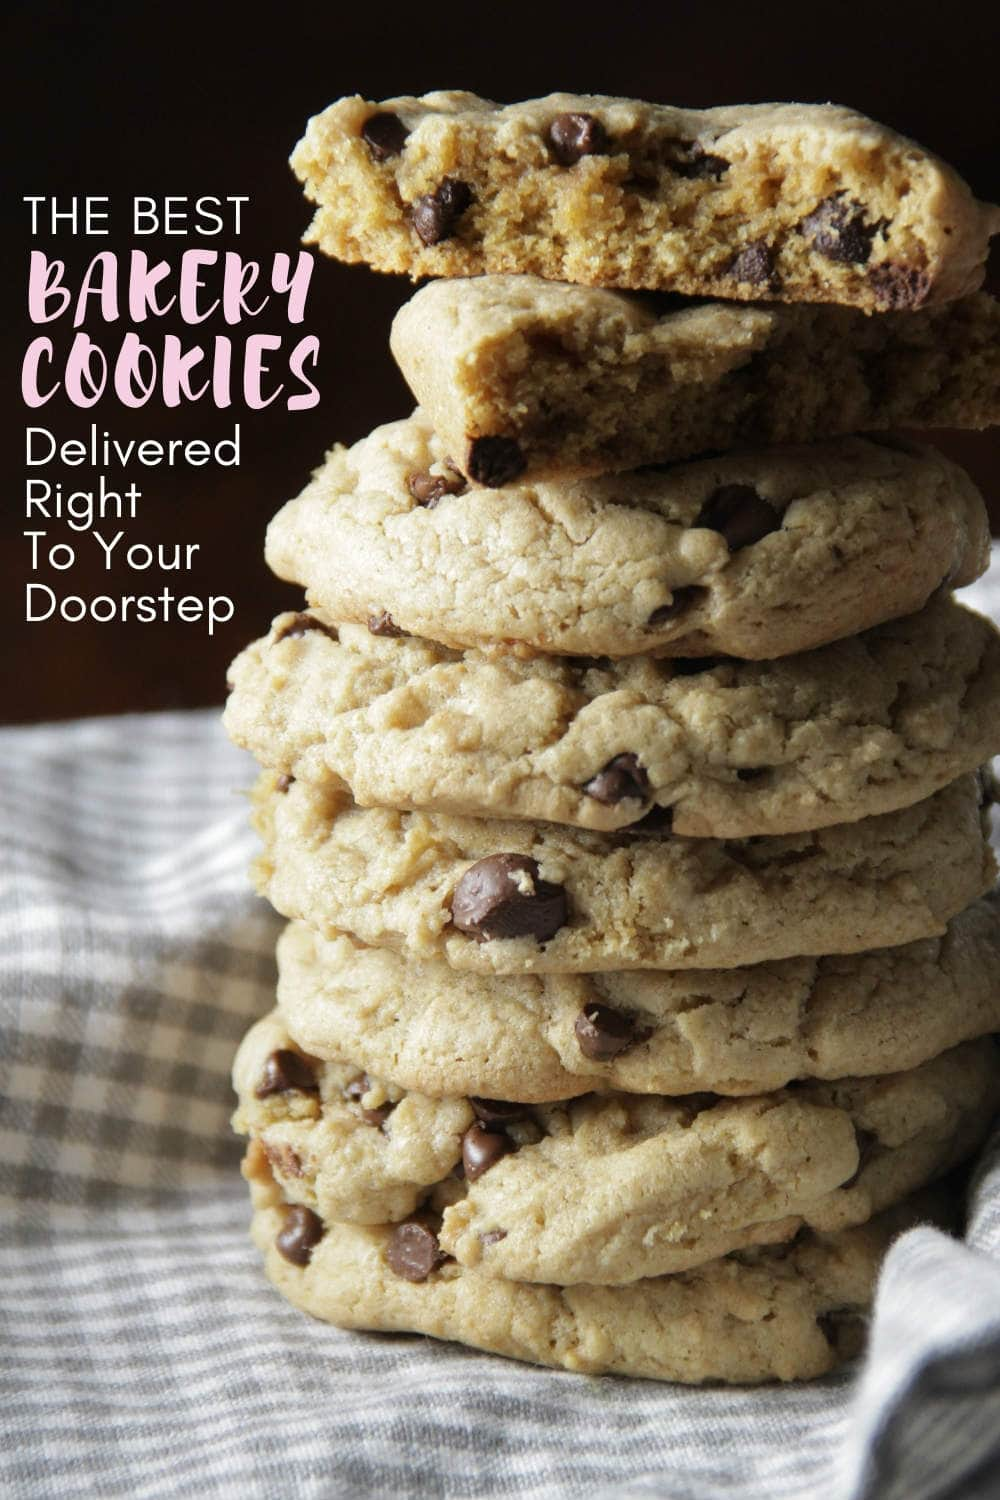 The Best Bakery Cookies Delivered Right To Doorstep